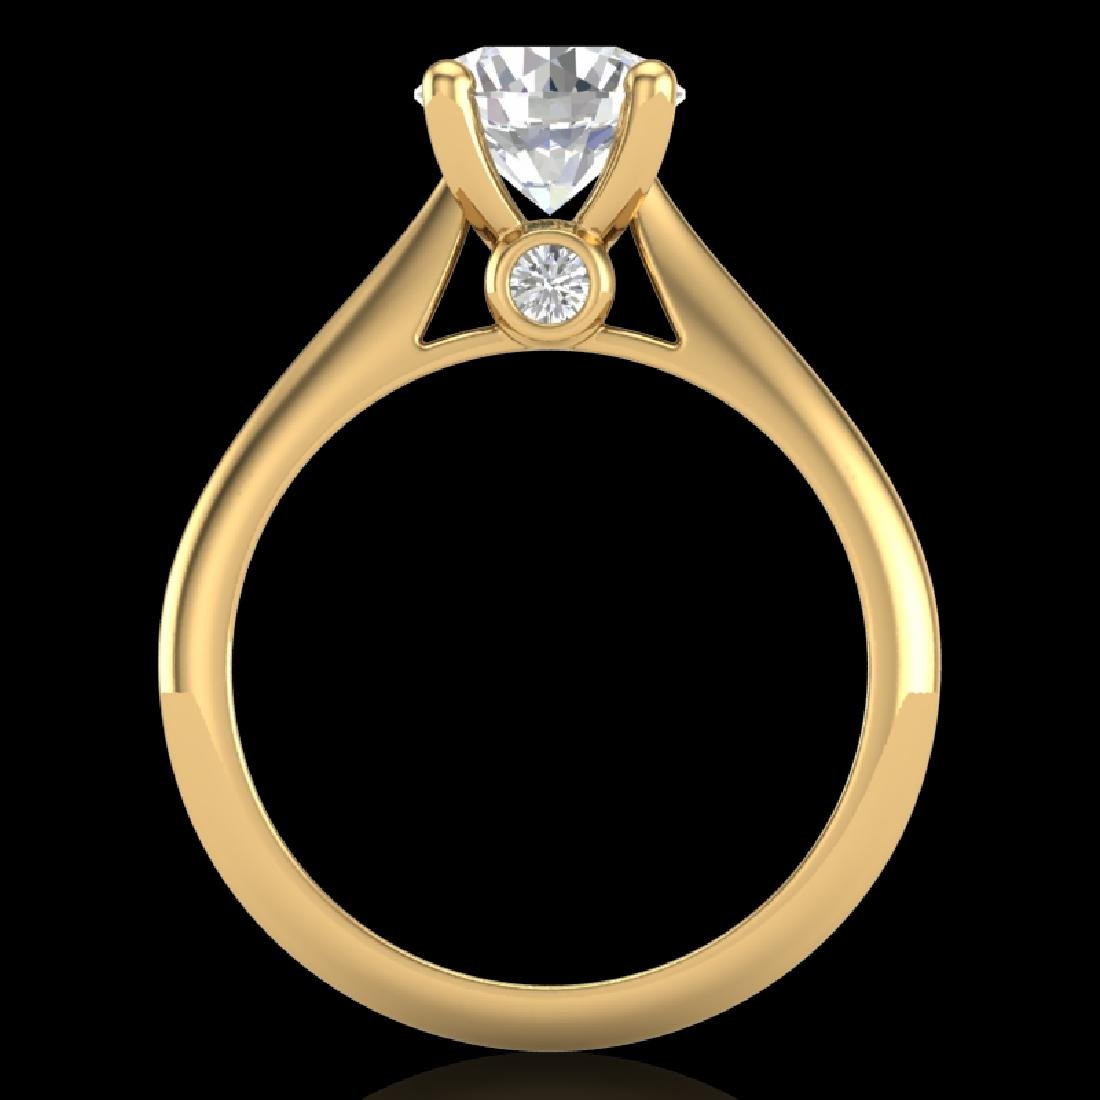 1.6 CTW VS/SI Diamond Art Deco Ring 18K Yellow Gold - 2